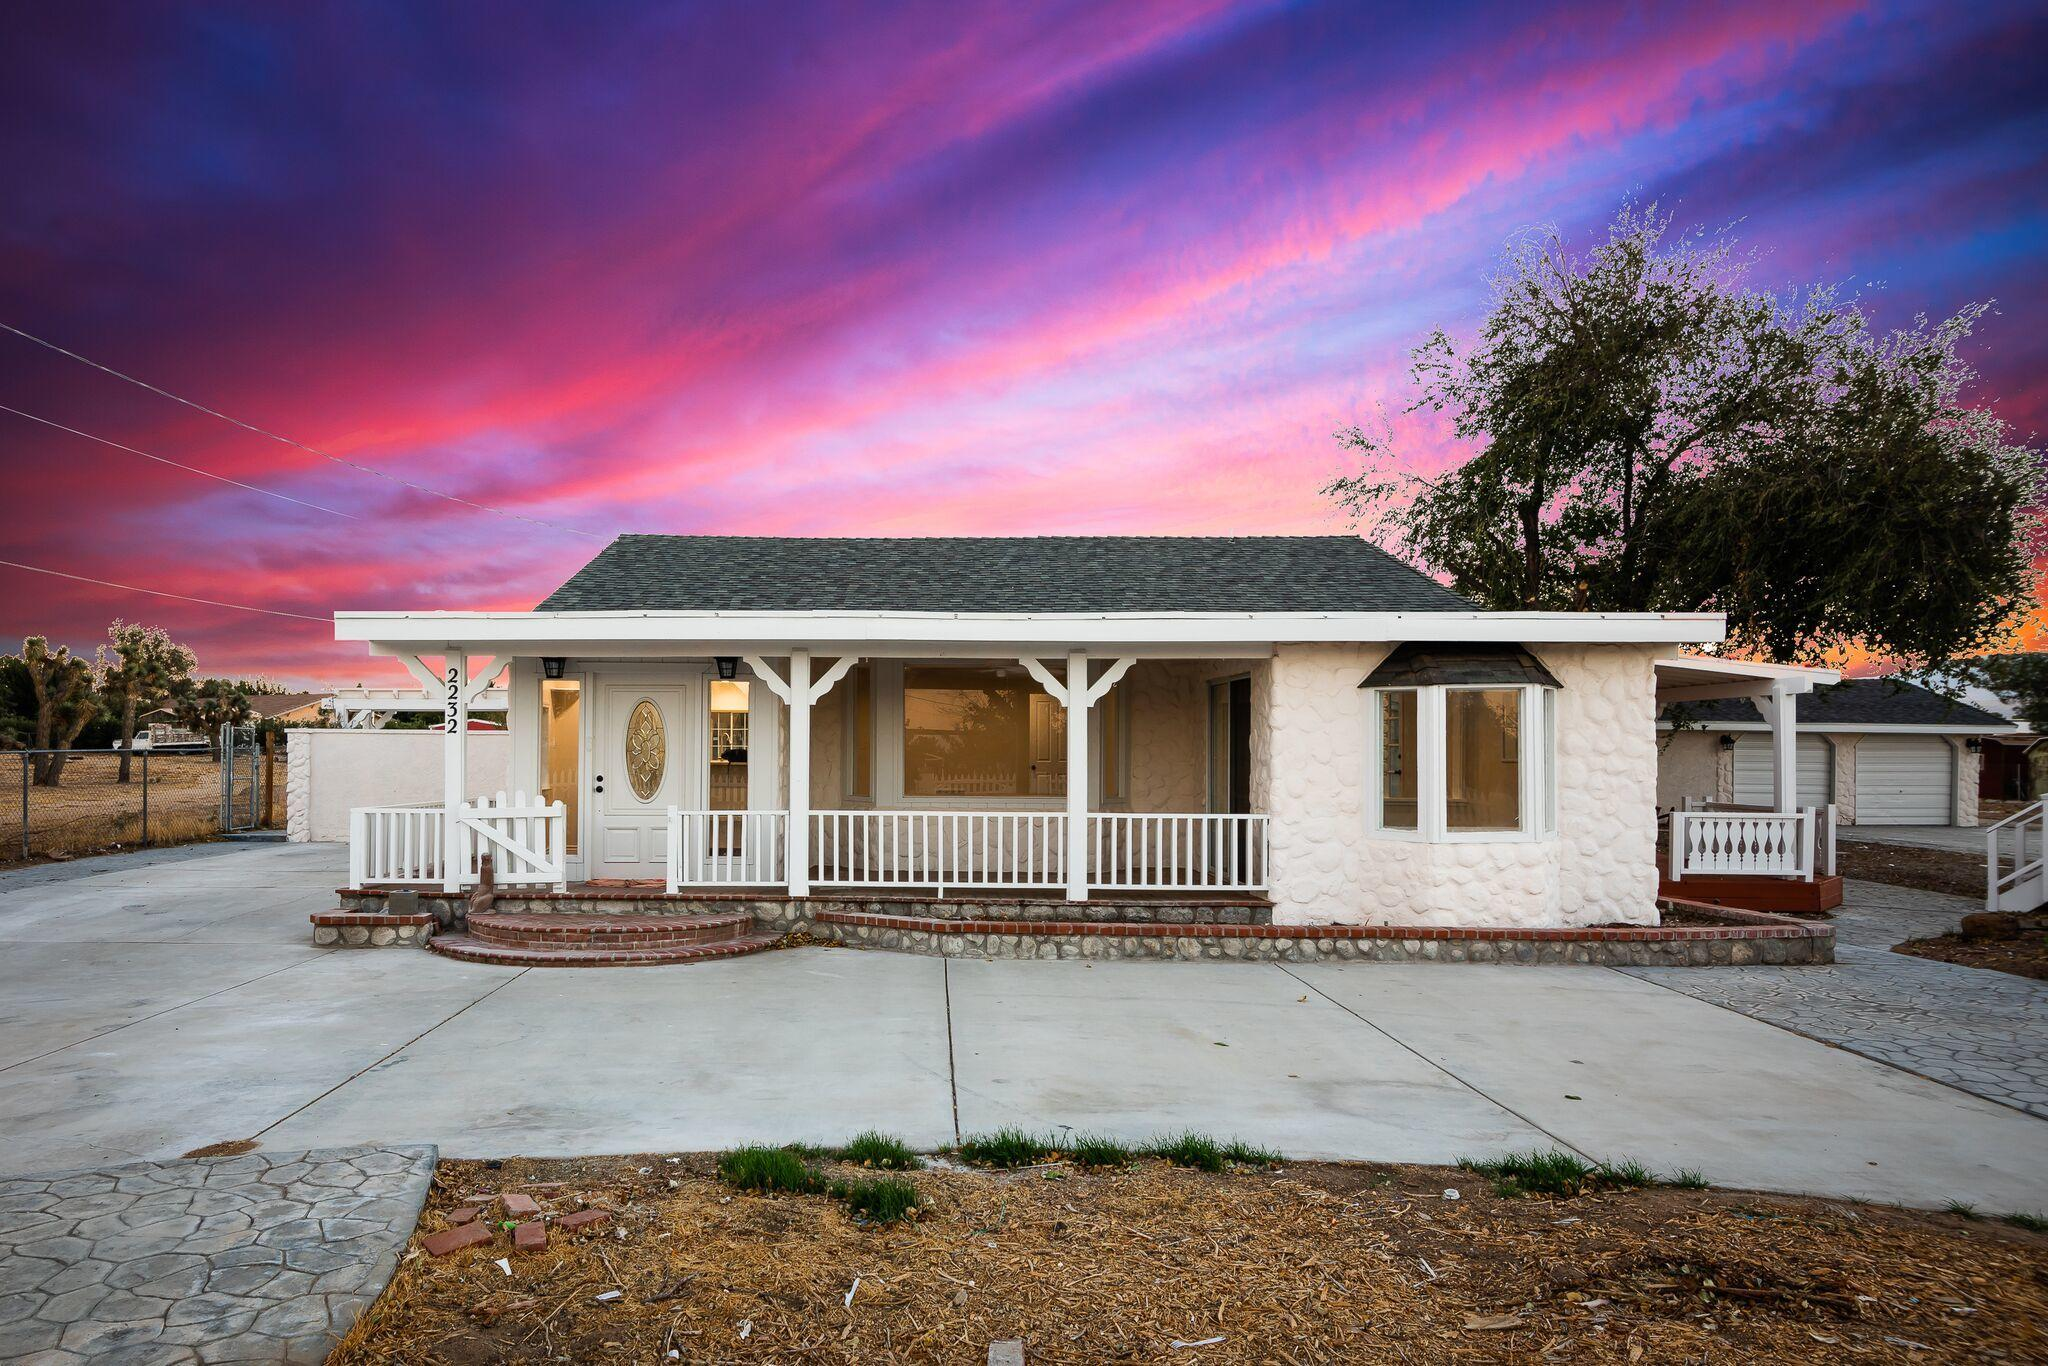 Ranch Homes for Sale - Palmdale Ranch Properties